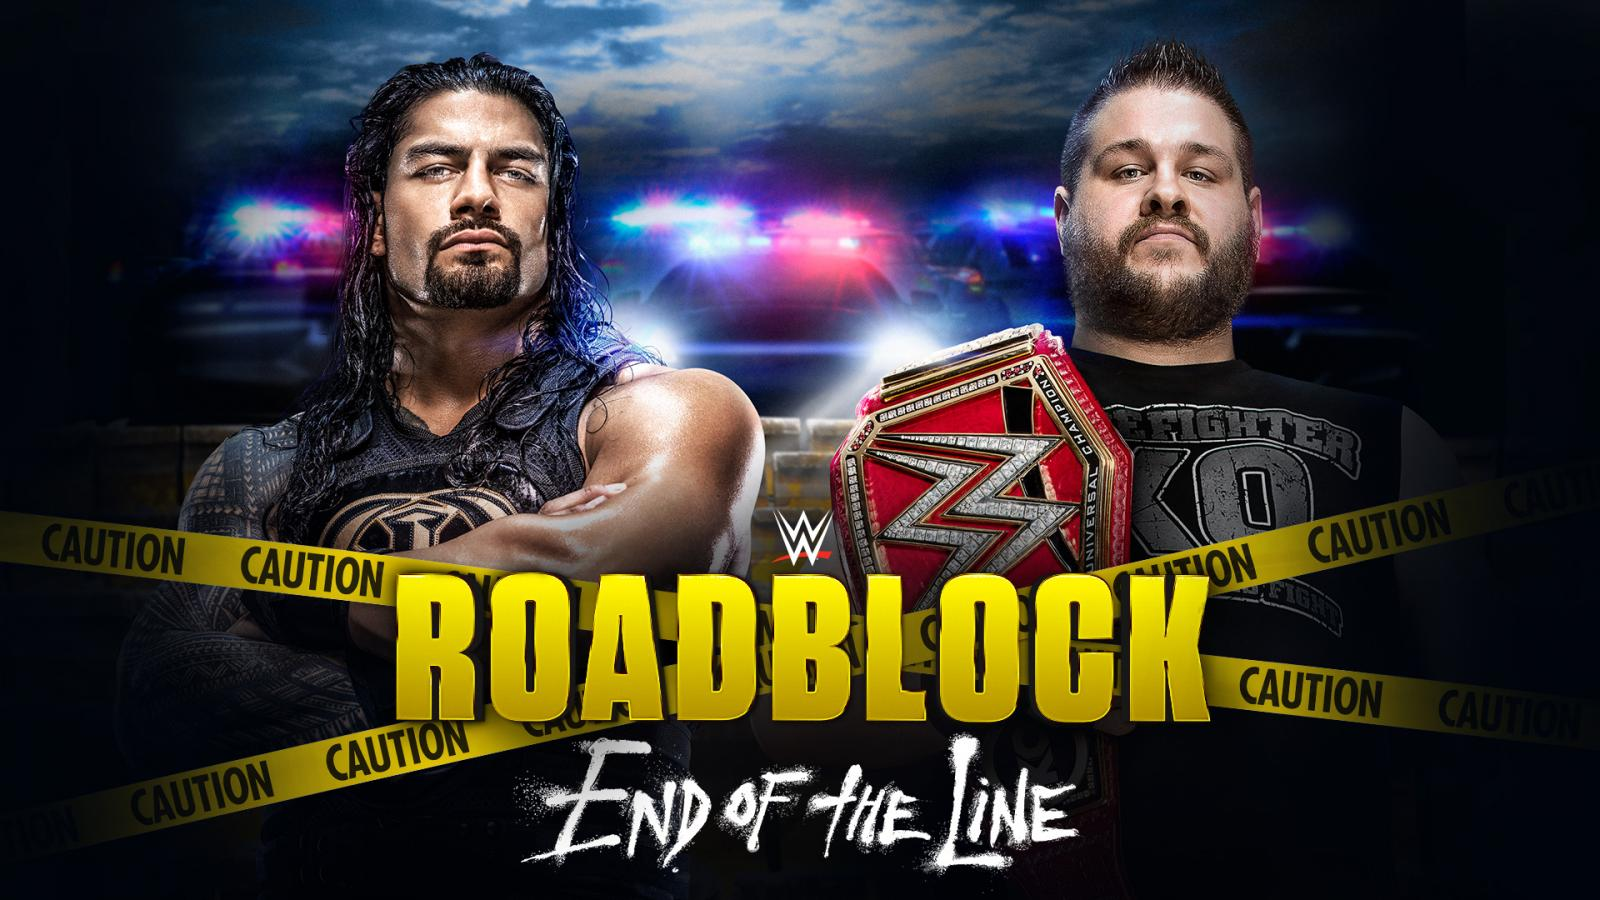 WWE Roadblock End of the Line